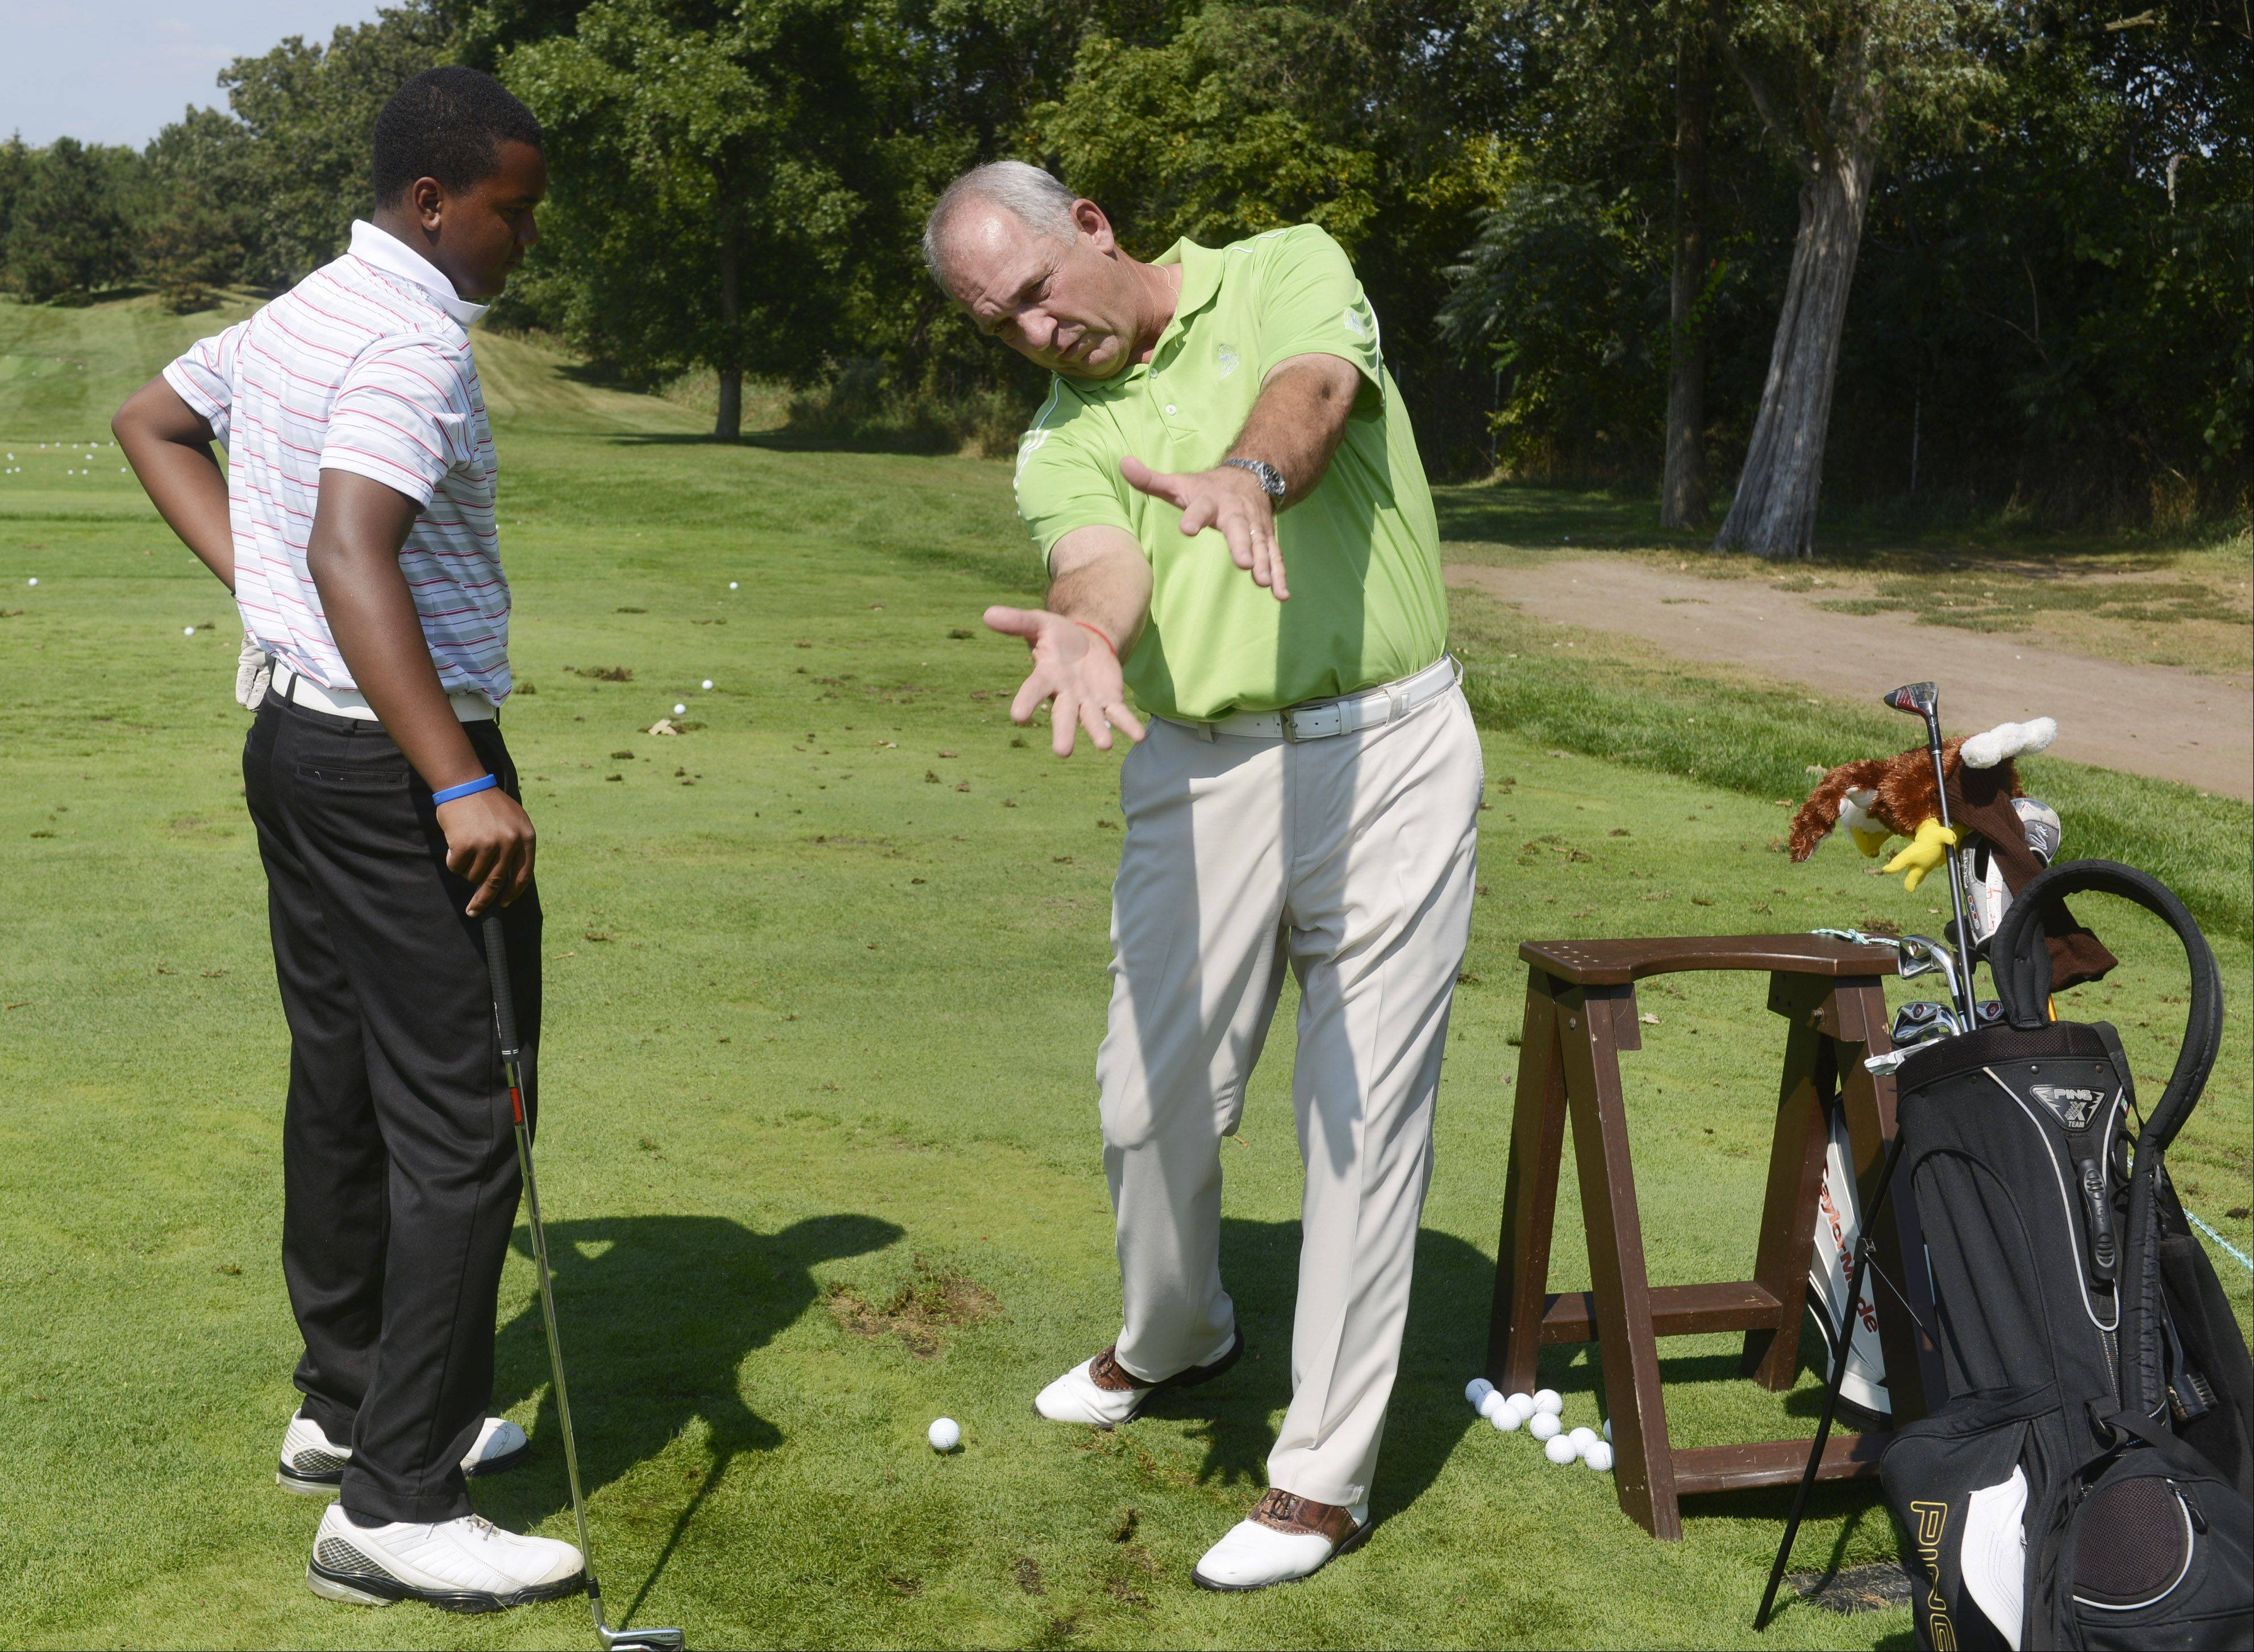 Head golf pro Jim Sobb gives advice to Trevor Britton, 14, of Wadsworth during the First Tee golf event at Ivanhoe Club near Mundelein. First Tee uses the game of golf to provide education programs that build character. Thirteen kids were rewarded for their good choices with a special day at Ivanhoe.